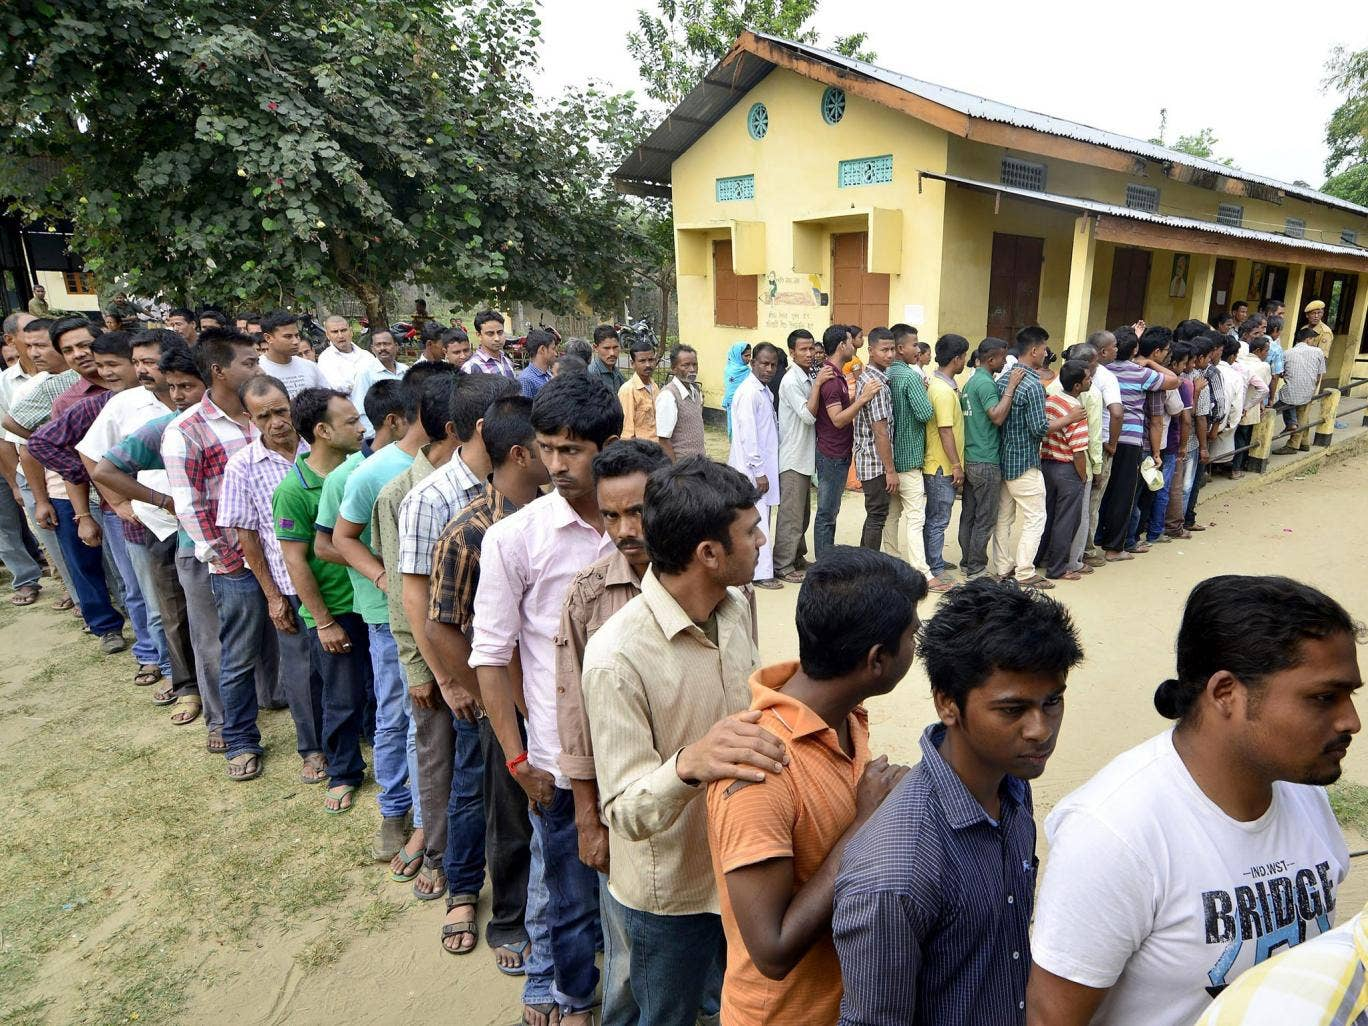 Villagers wait in line to cast their votes during the first phase of the Indian general election yesterday. India's five-week, multi-phase parliamentary elections began with voting in Tripura and Assam